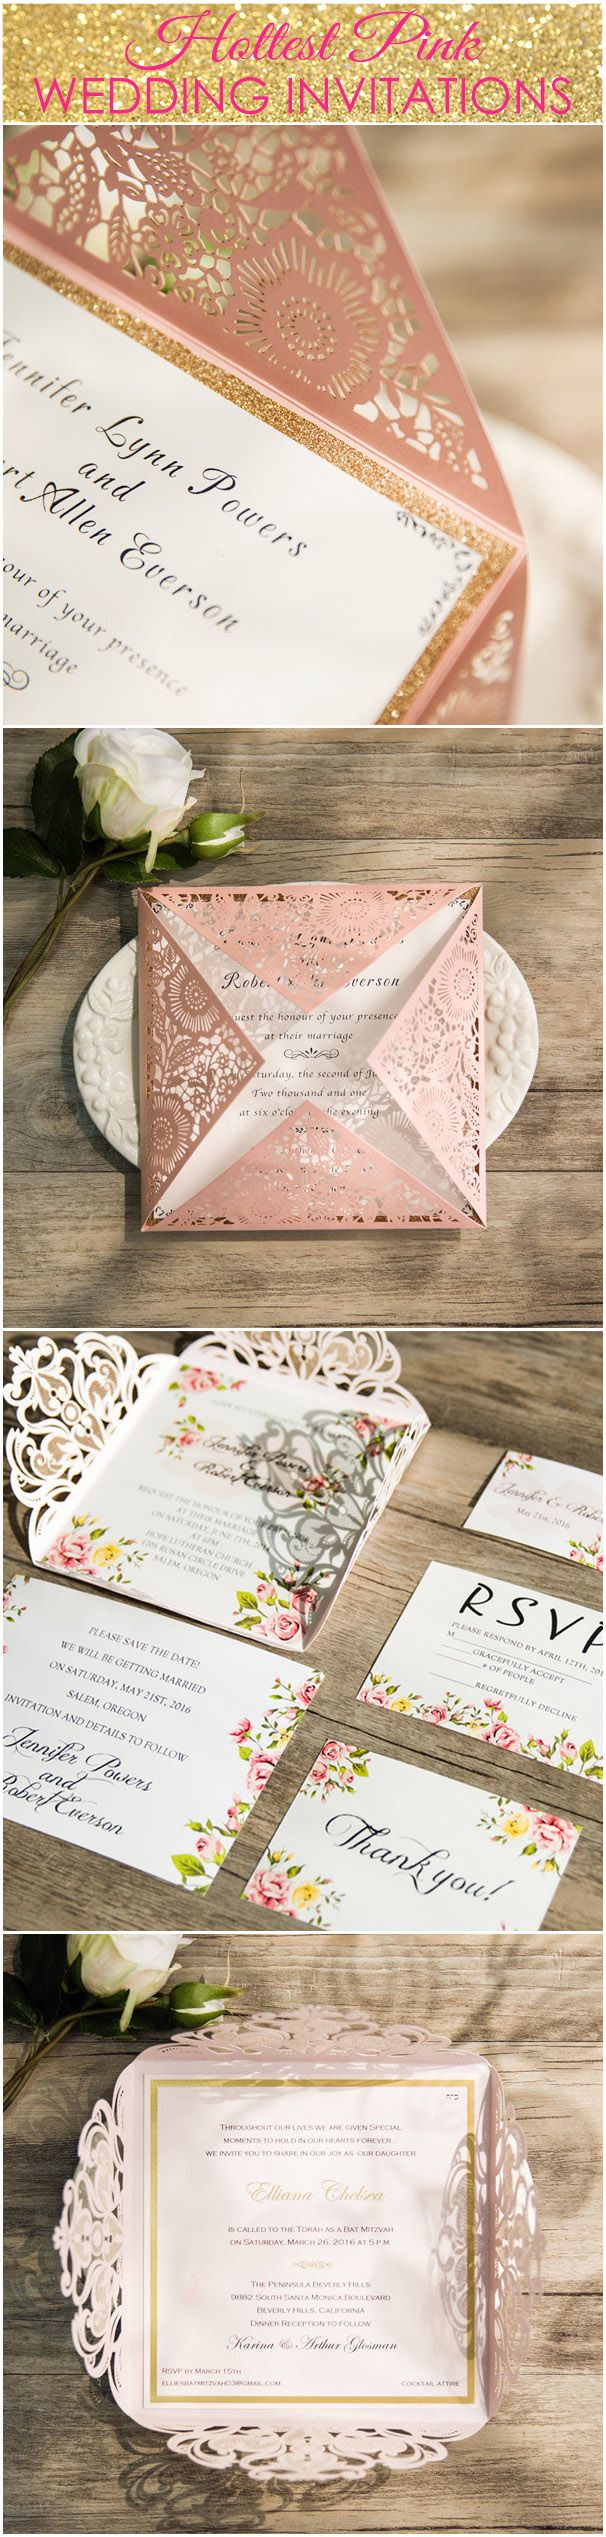 muslim wedding card invitation quotes%0A Top    Most Popular Pink Wedding Invitations from EWI